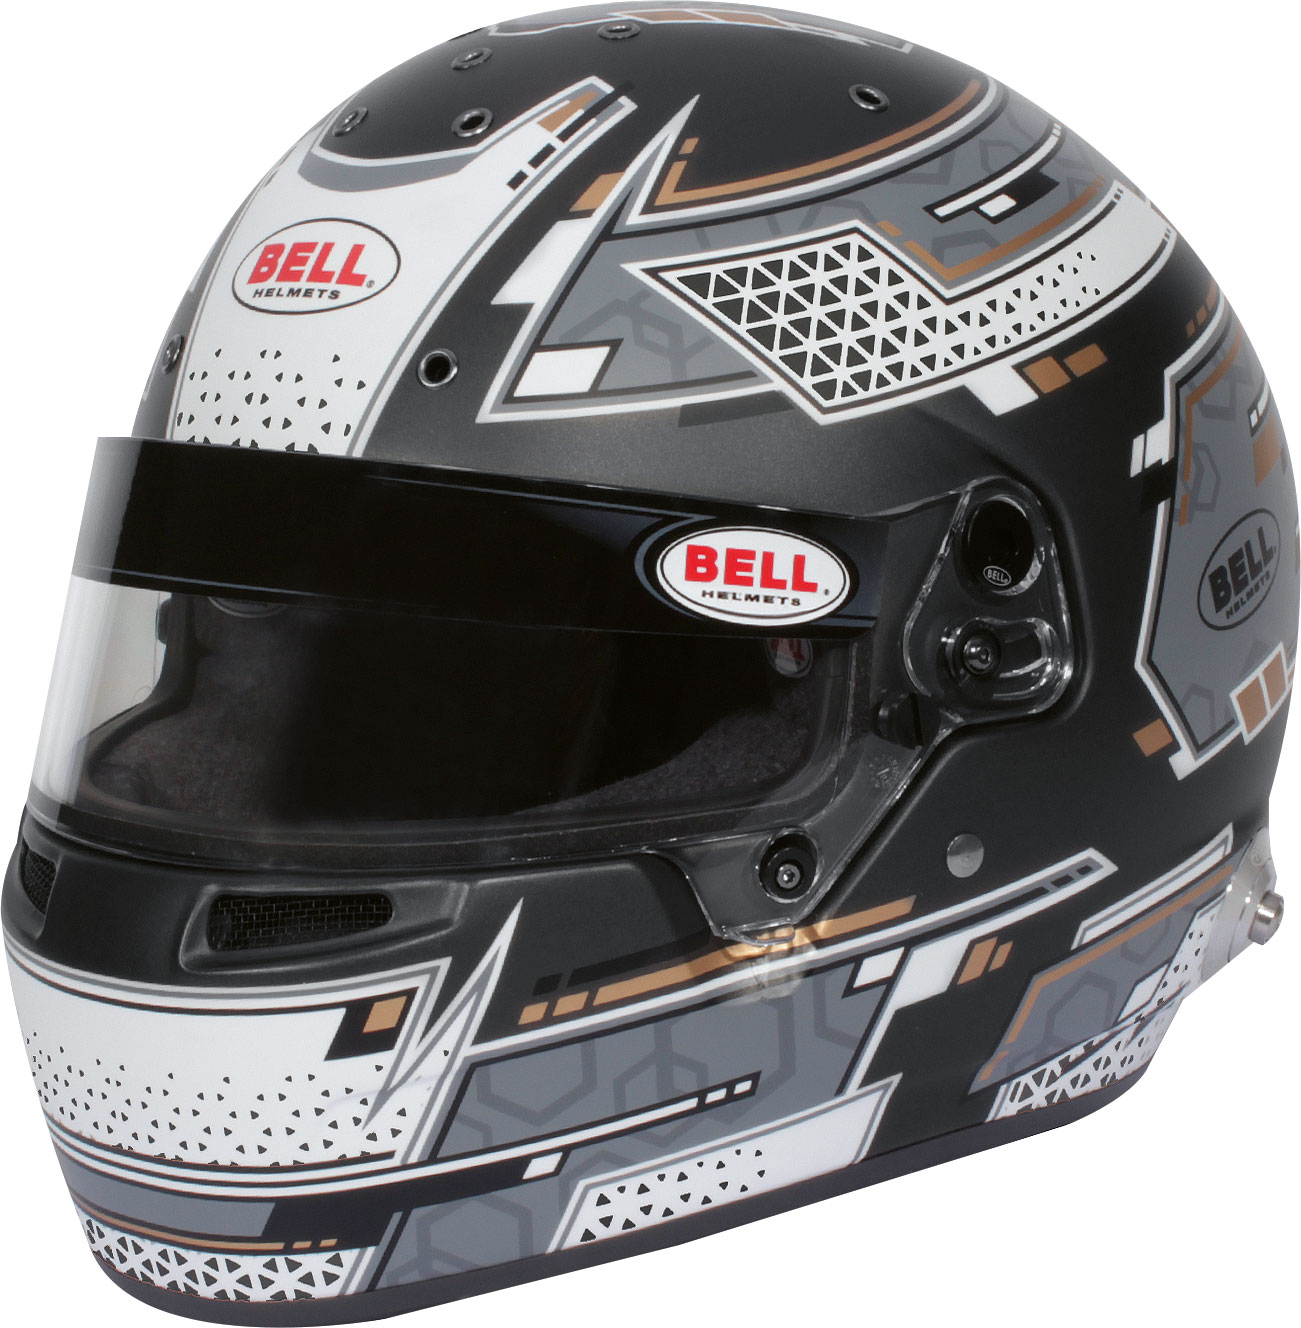 BELL Helm RS7 Pro Stamina